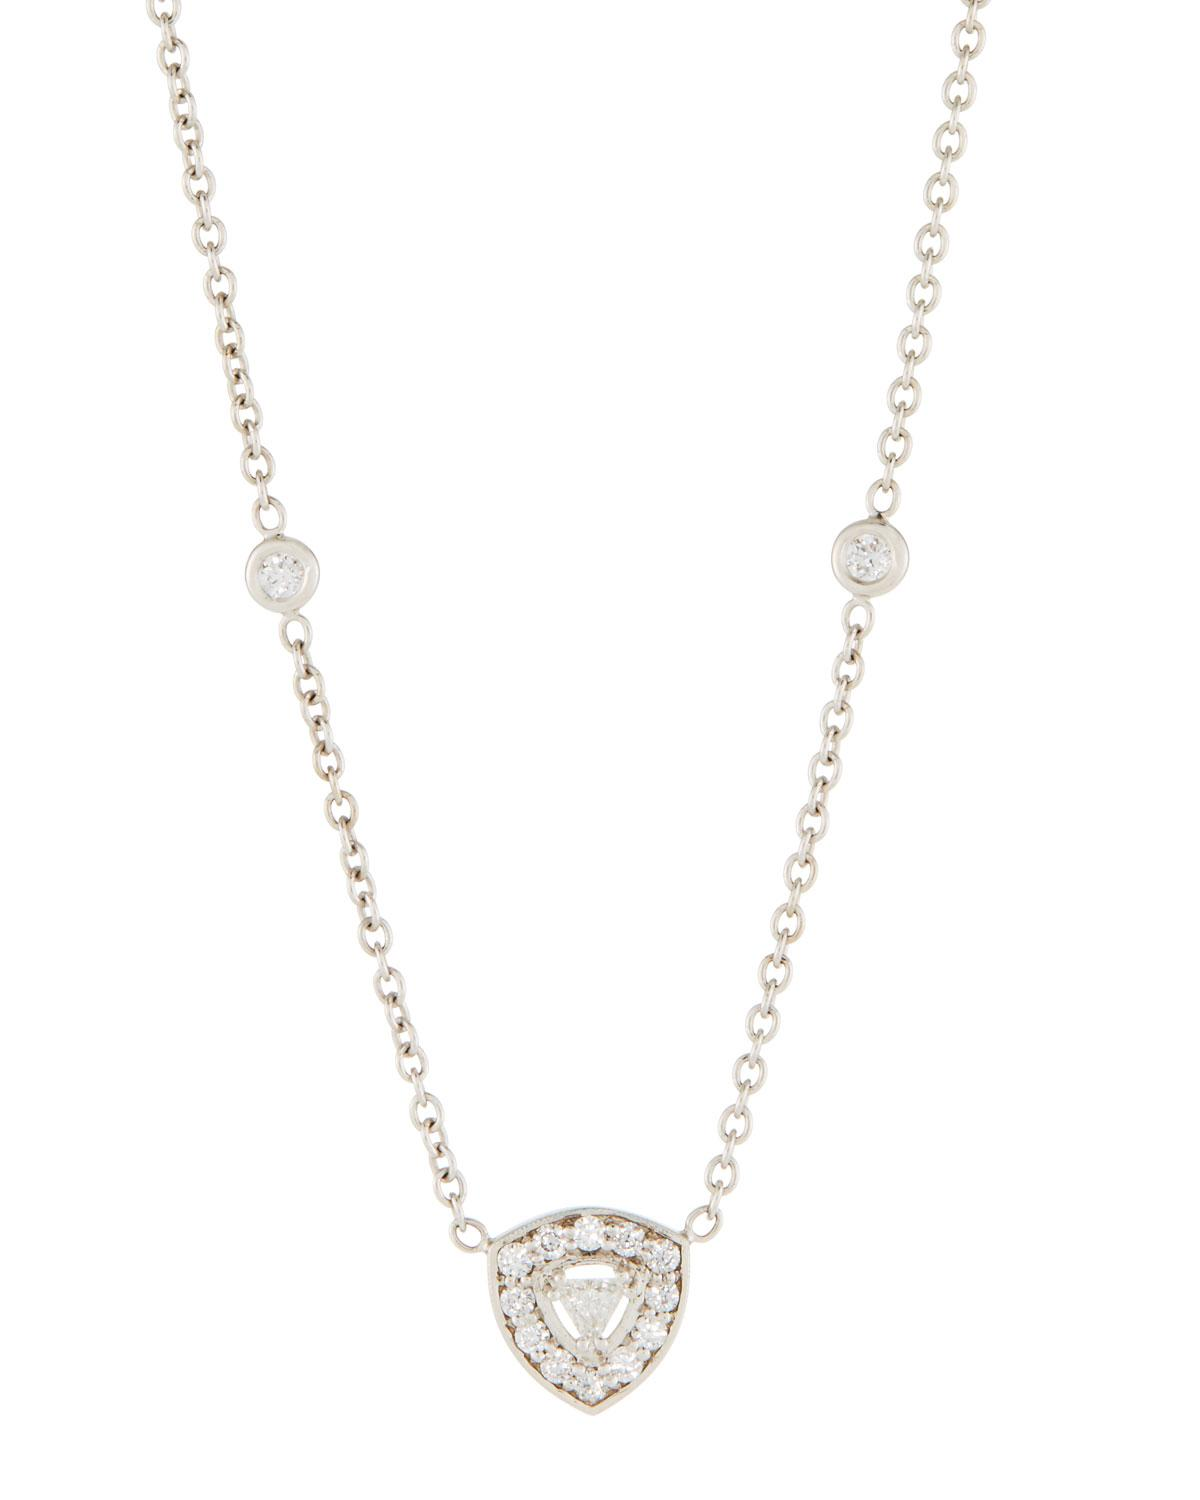 Penny Preville Pavé Diamond Flower Pendant Necklace ZNoiWJsqDz